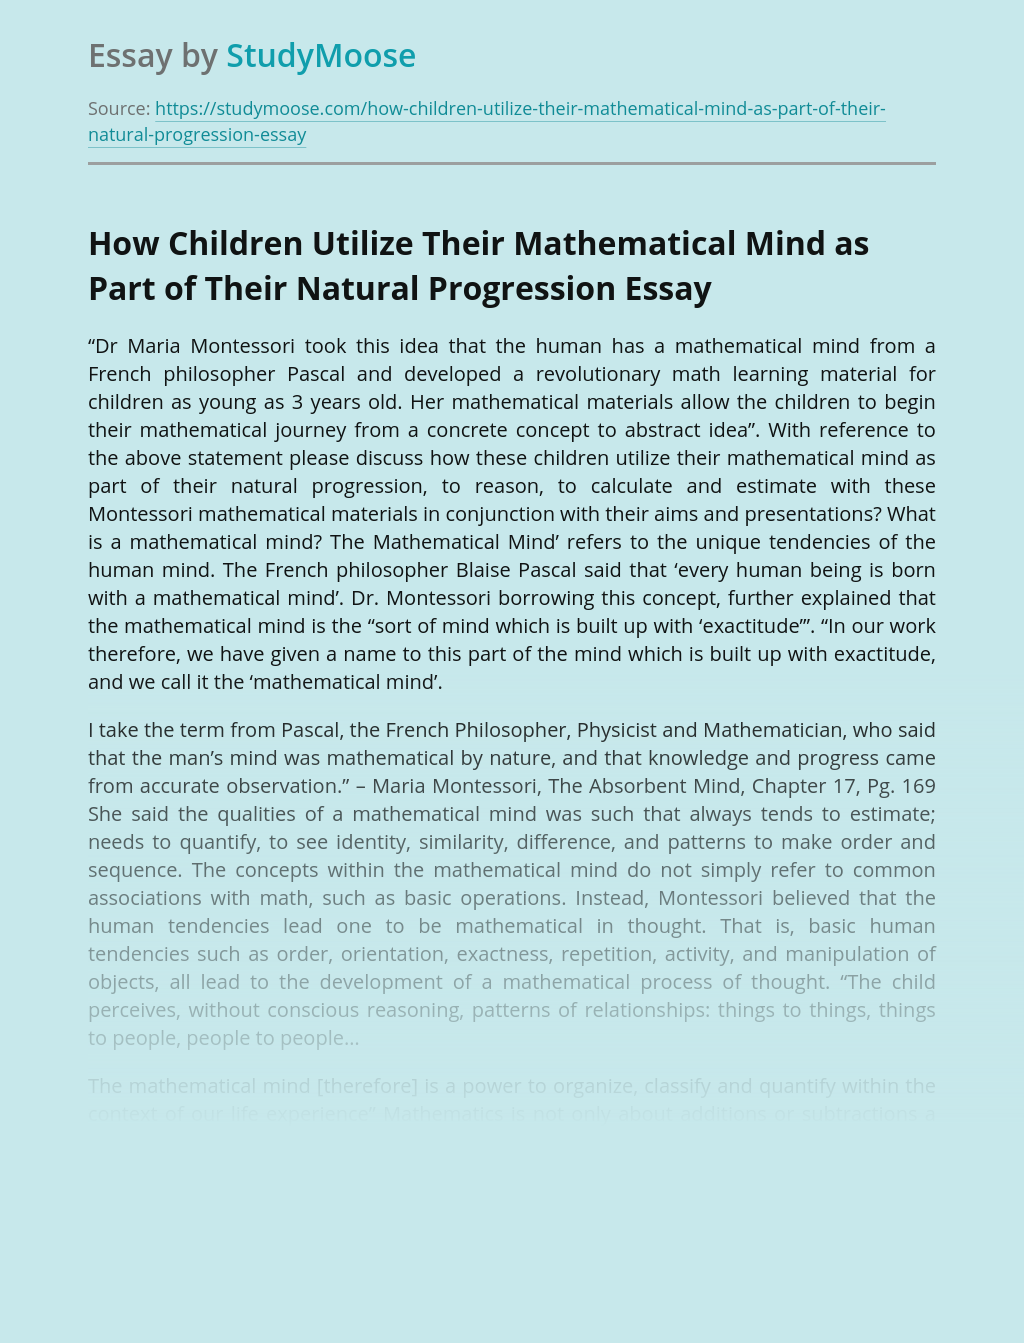 How Children Utilize Their Mathematical Mind as Part of Their Natural Progression